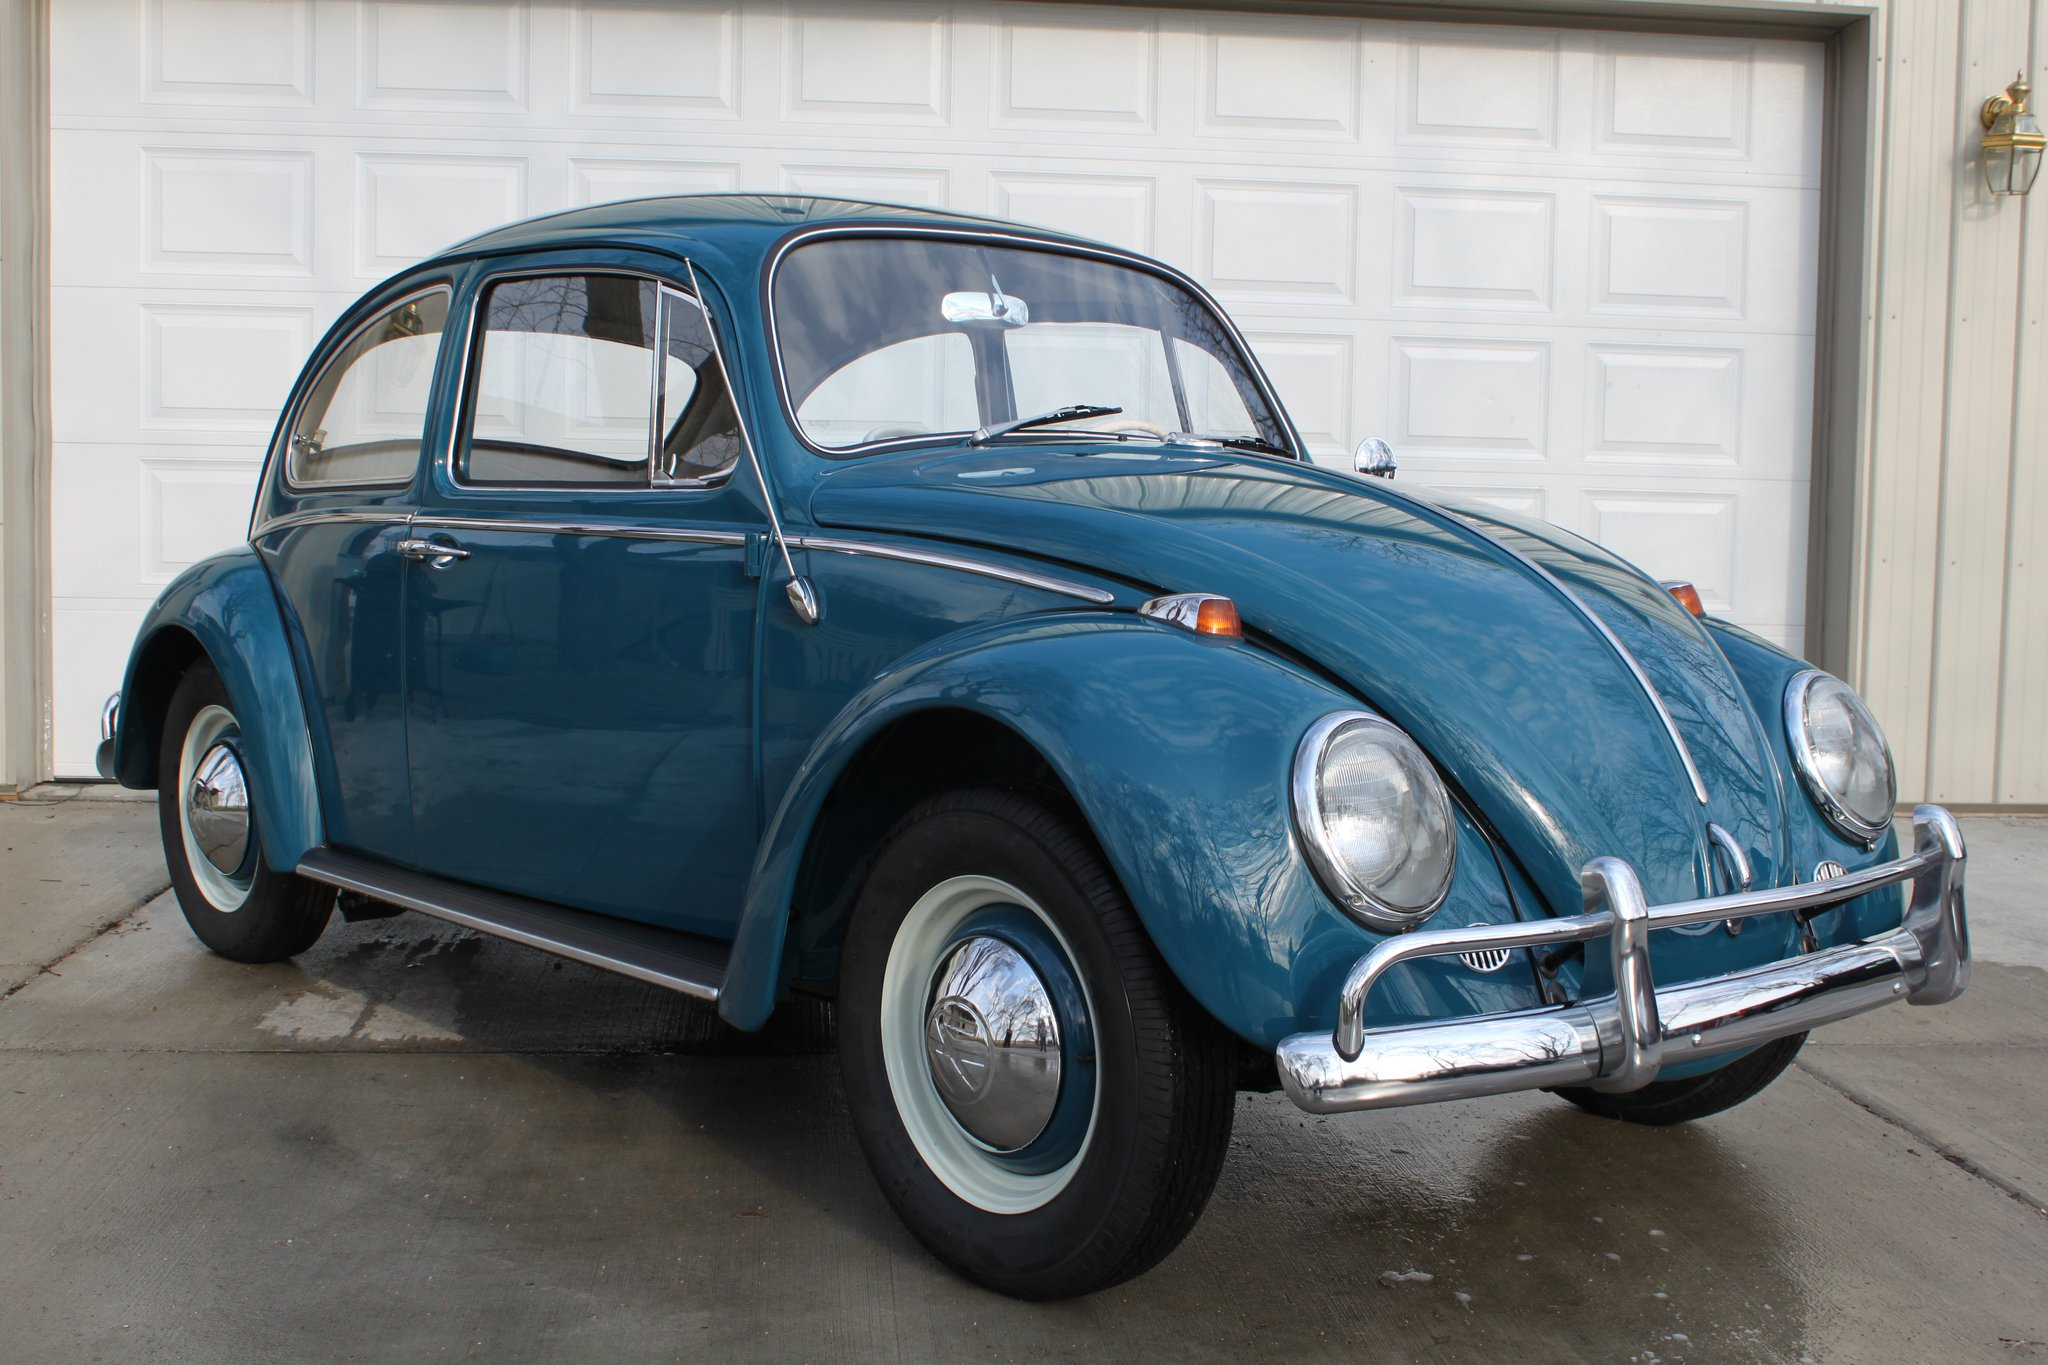 vw beetle blue | Drew Walker dot com